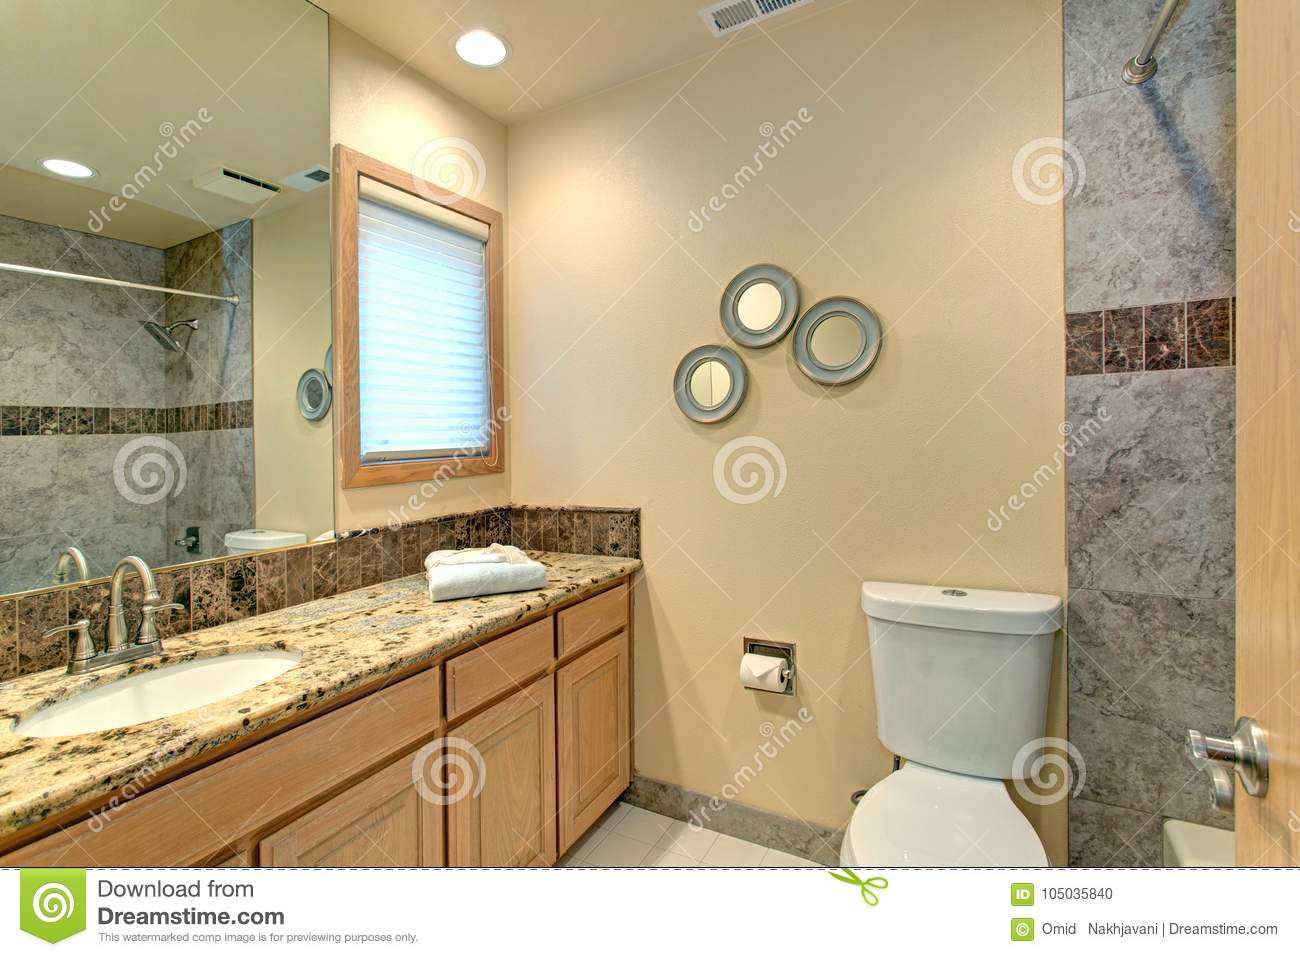 Neutral Bathroom Design With Green Marble Tile Stock Photo - Image ...